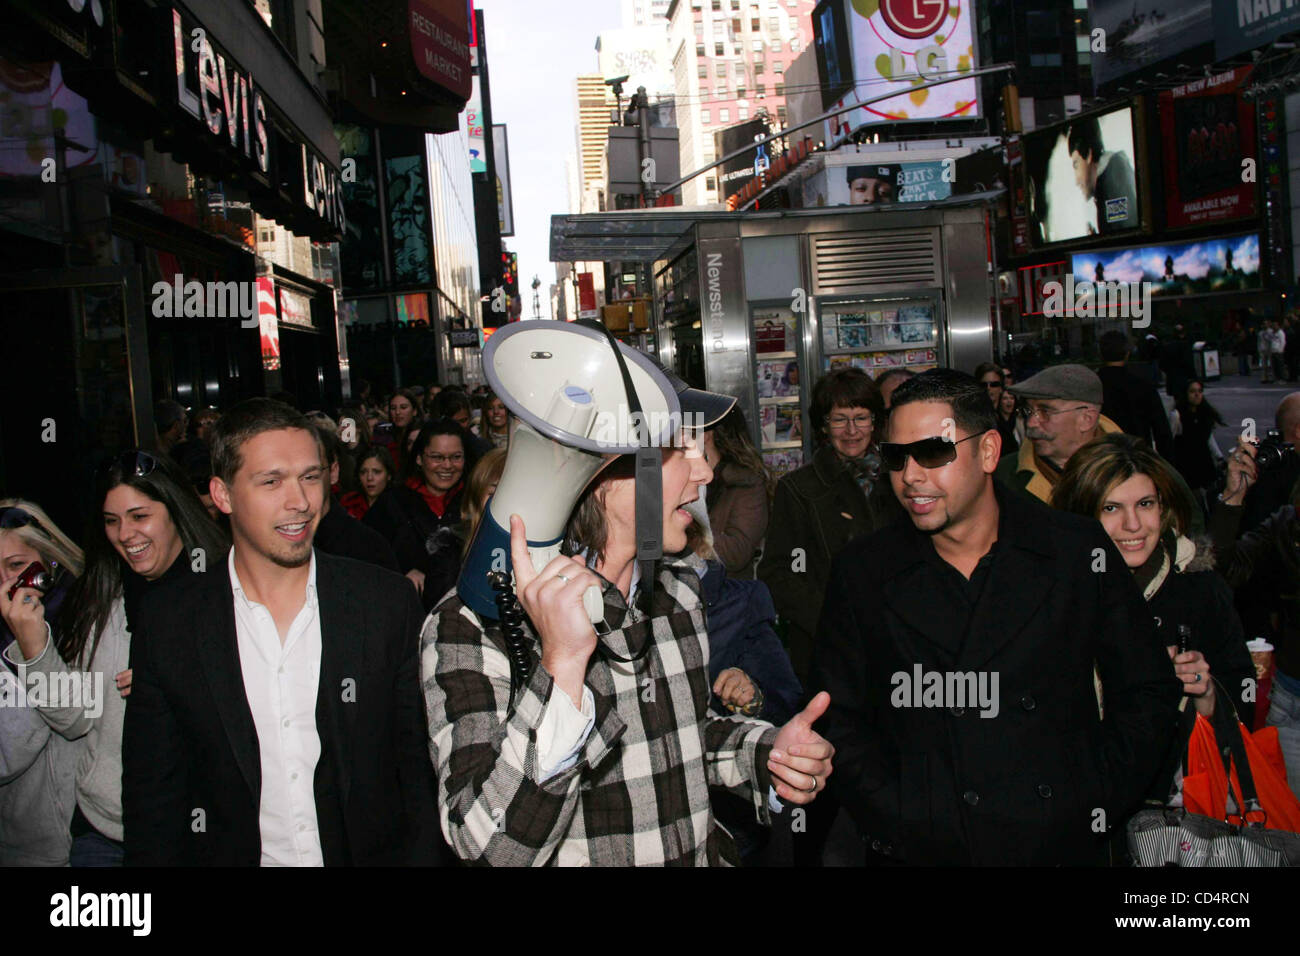 Oct. 20, 2008 - New York, New York, U.S. - TEEN IDOL RECORDING GROUP HANSON LEADS A ONE MILE BAREFOOT WALK AROUND Stock Photo